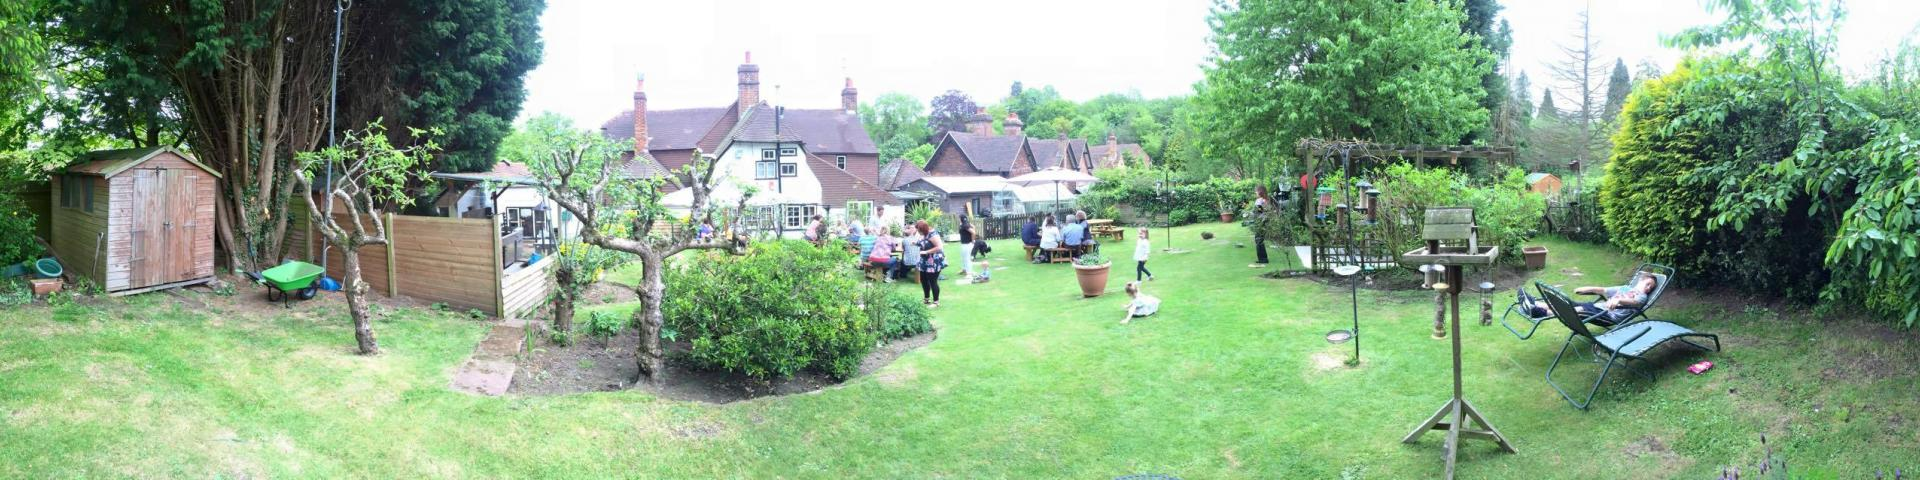 Bucks Head, Godden Green